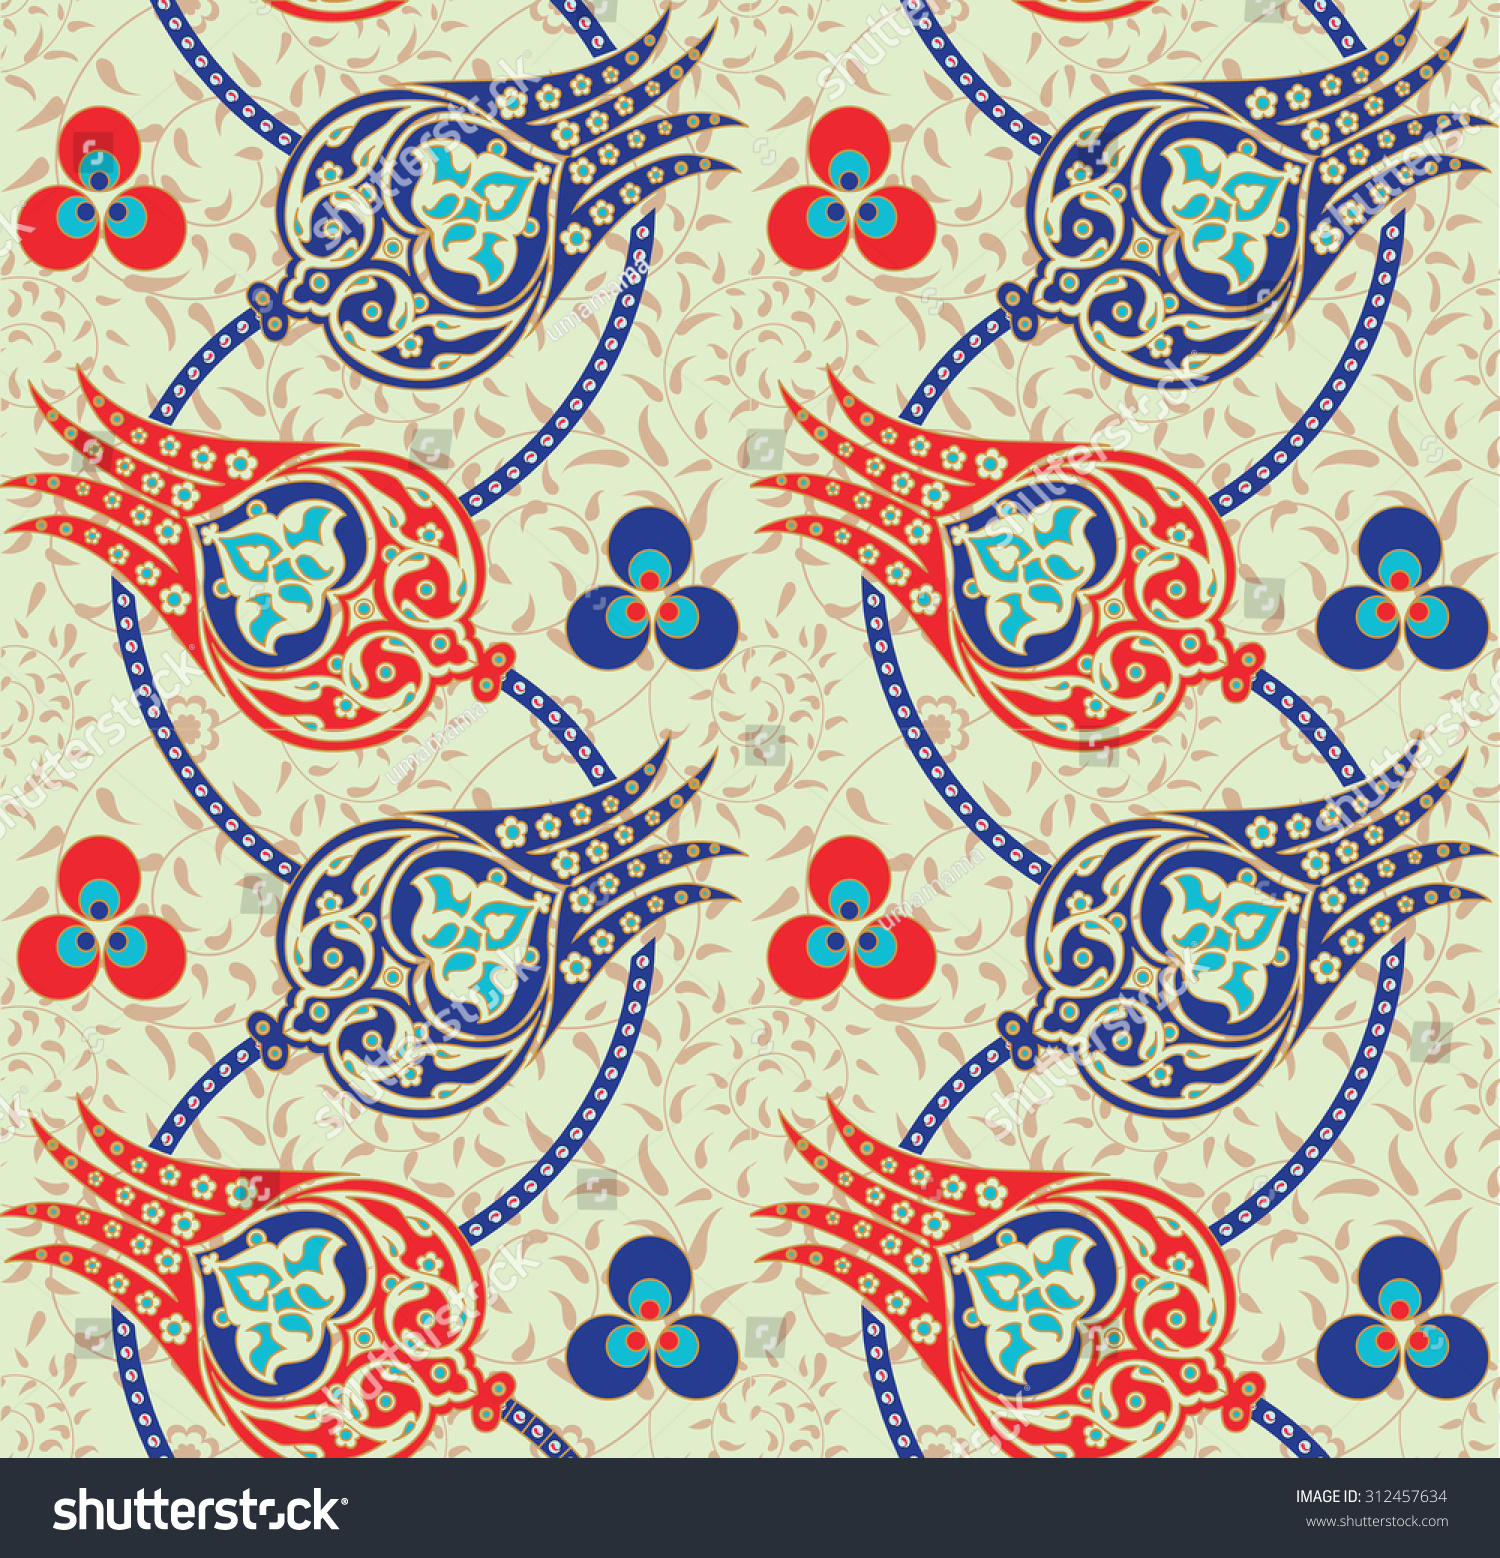 Traditional Turkish Ottoman Red Flower Home Decor Mosaic: Seamless Traditional Turkish Ottoman Floral Pattern Stock